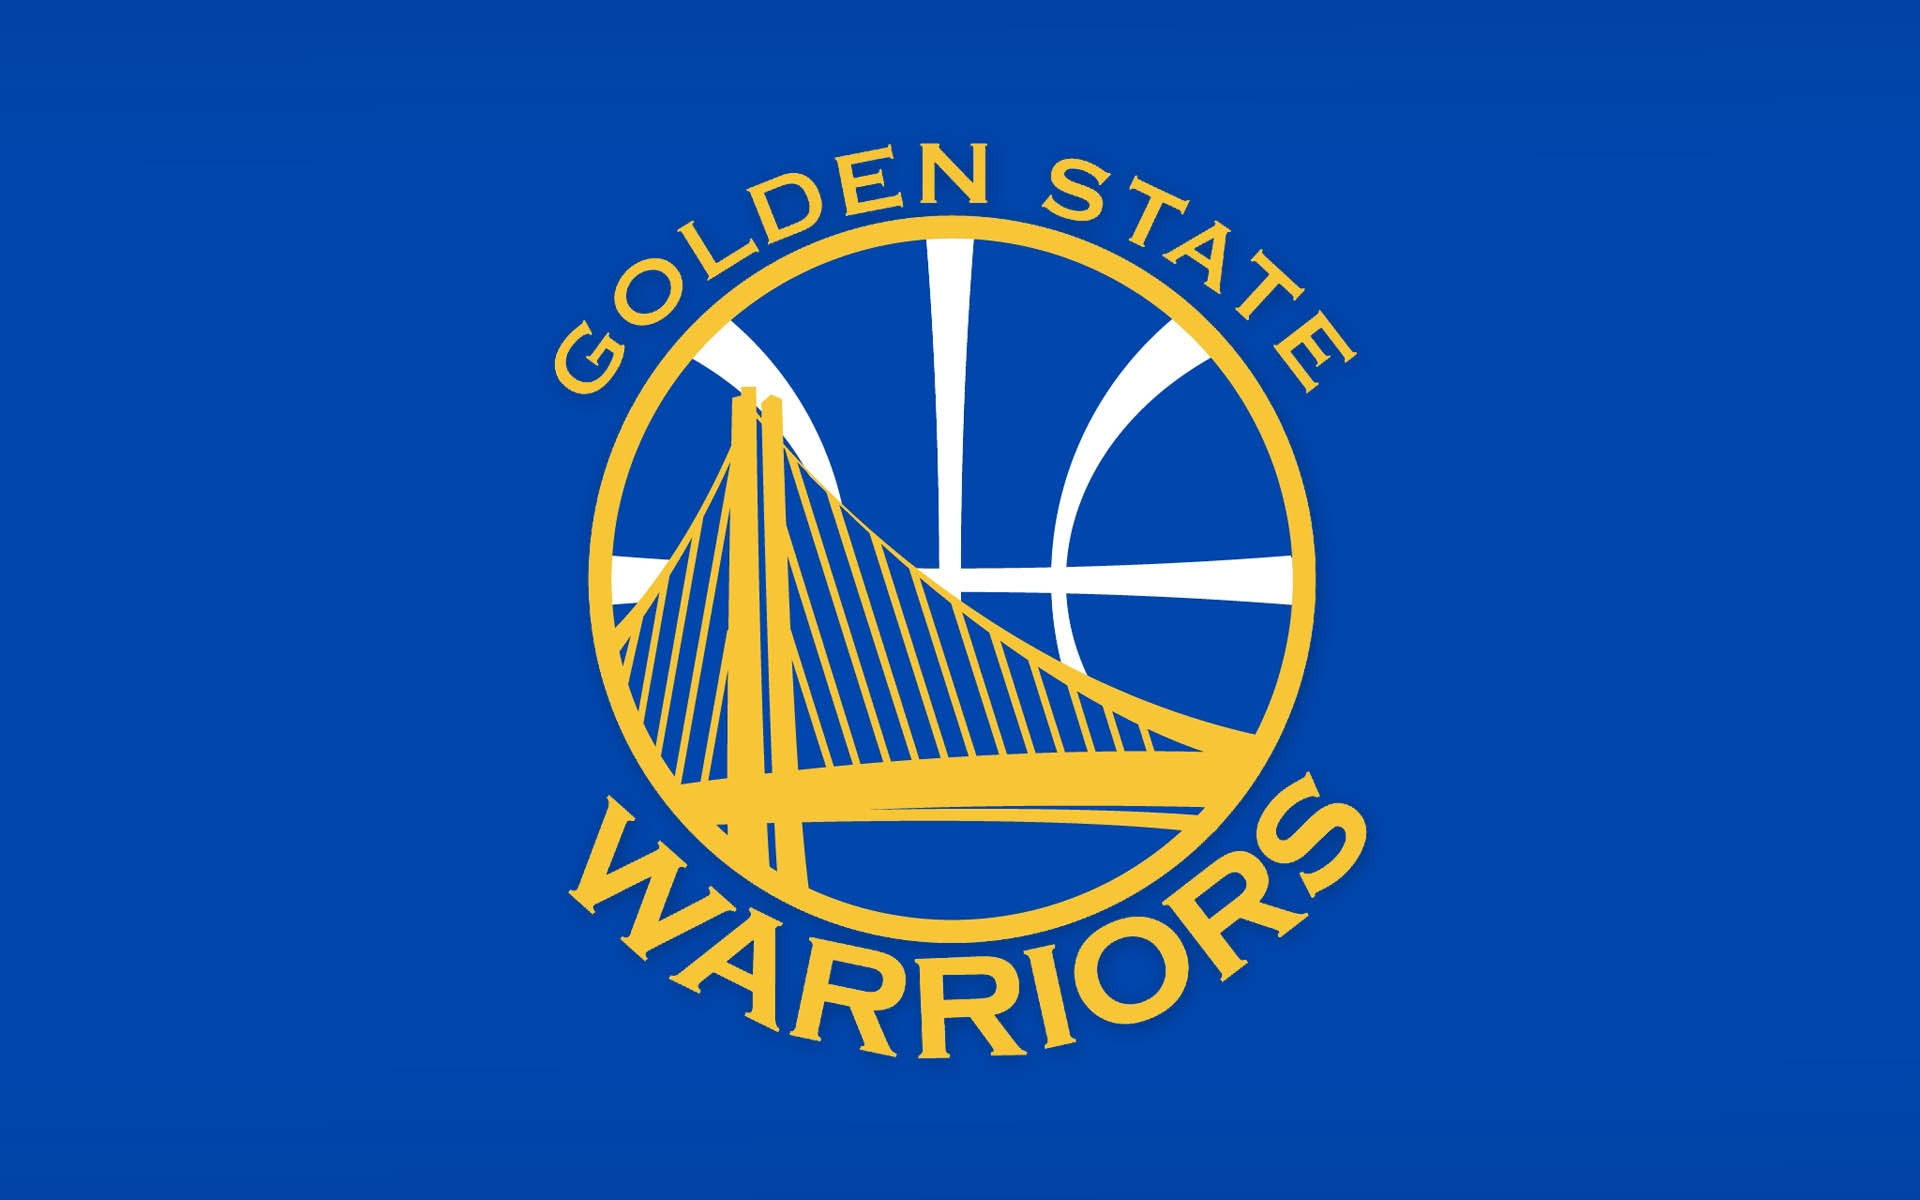 Golden State Warriors Logo Background; Golden State Warriors Background